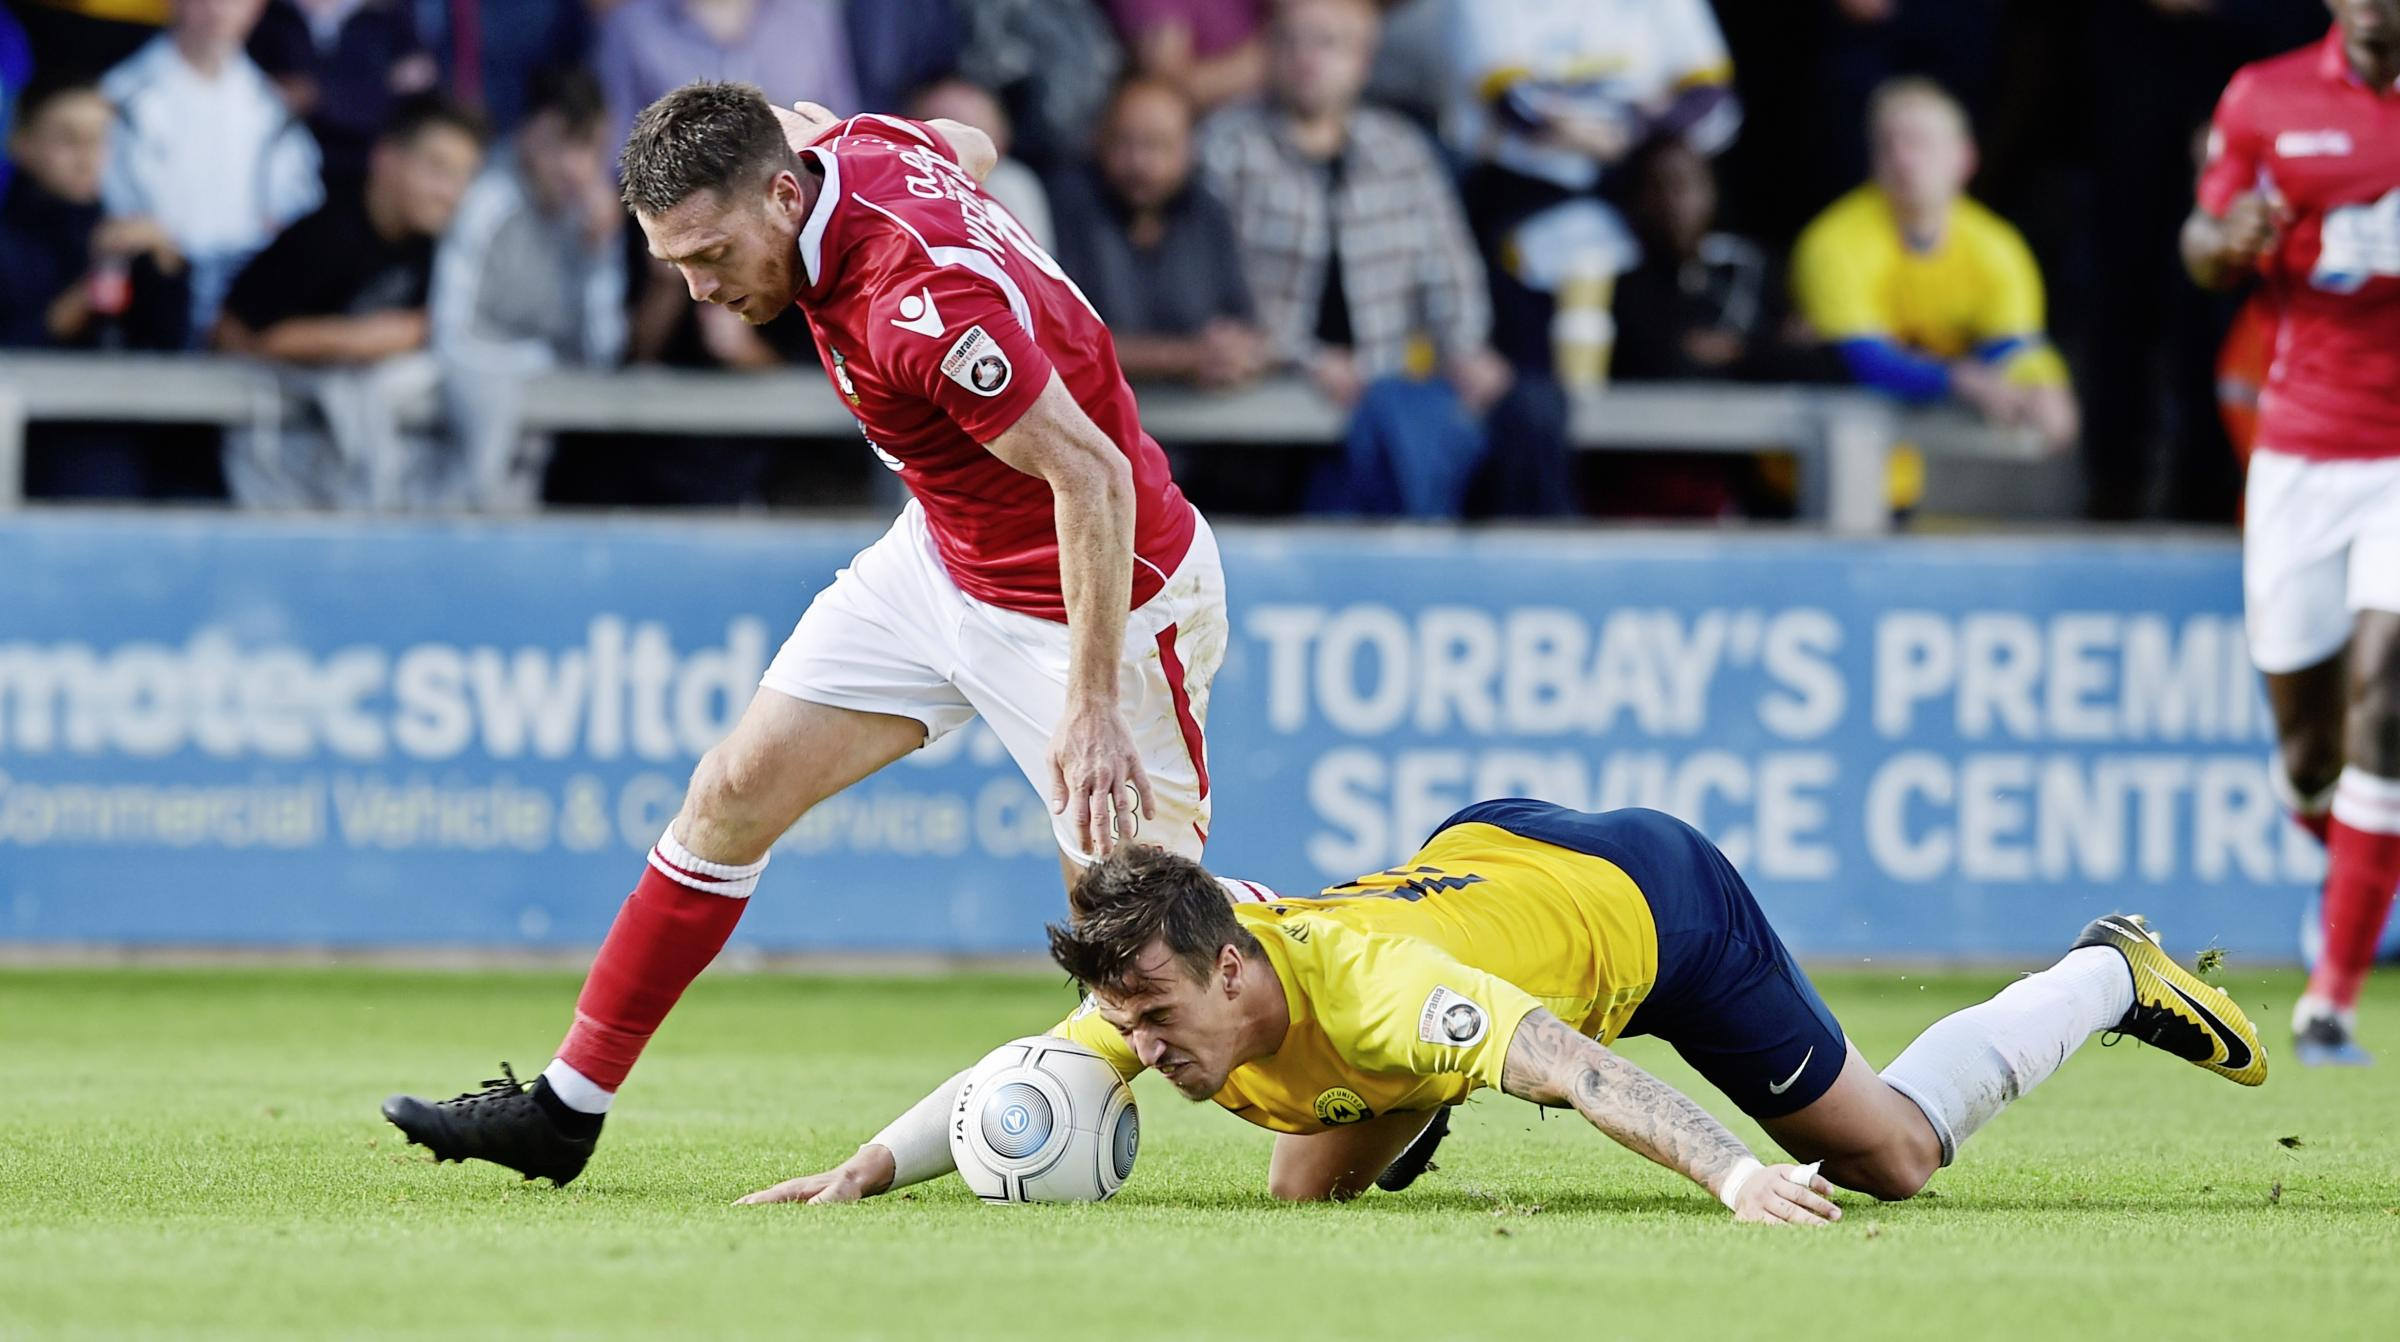 Sam Wedgbury of Wrexham brings down James Gray of Torquay United,   during the Vanarama National League match between Torquay United and Wrexham at Plainmoor, Torquay, Devon on September 09 - PHOTO: Sean Hernon/PPAUK